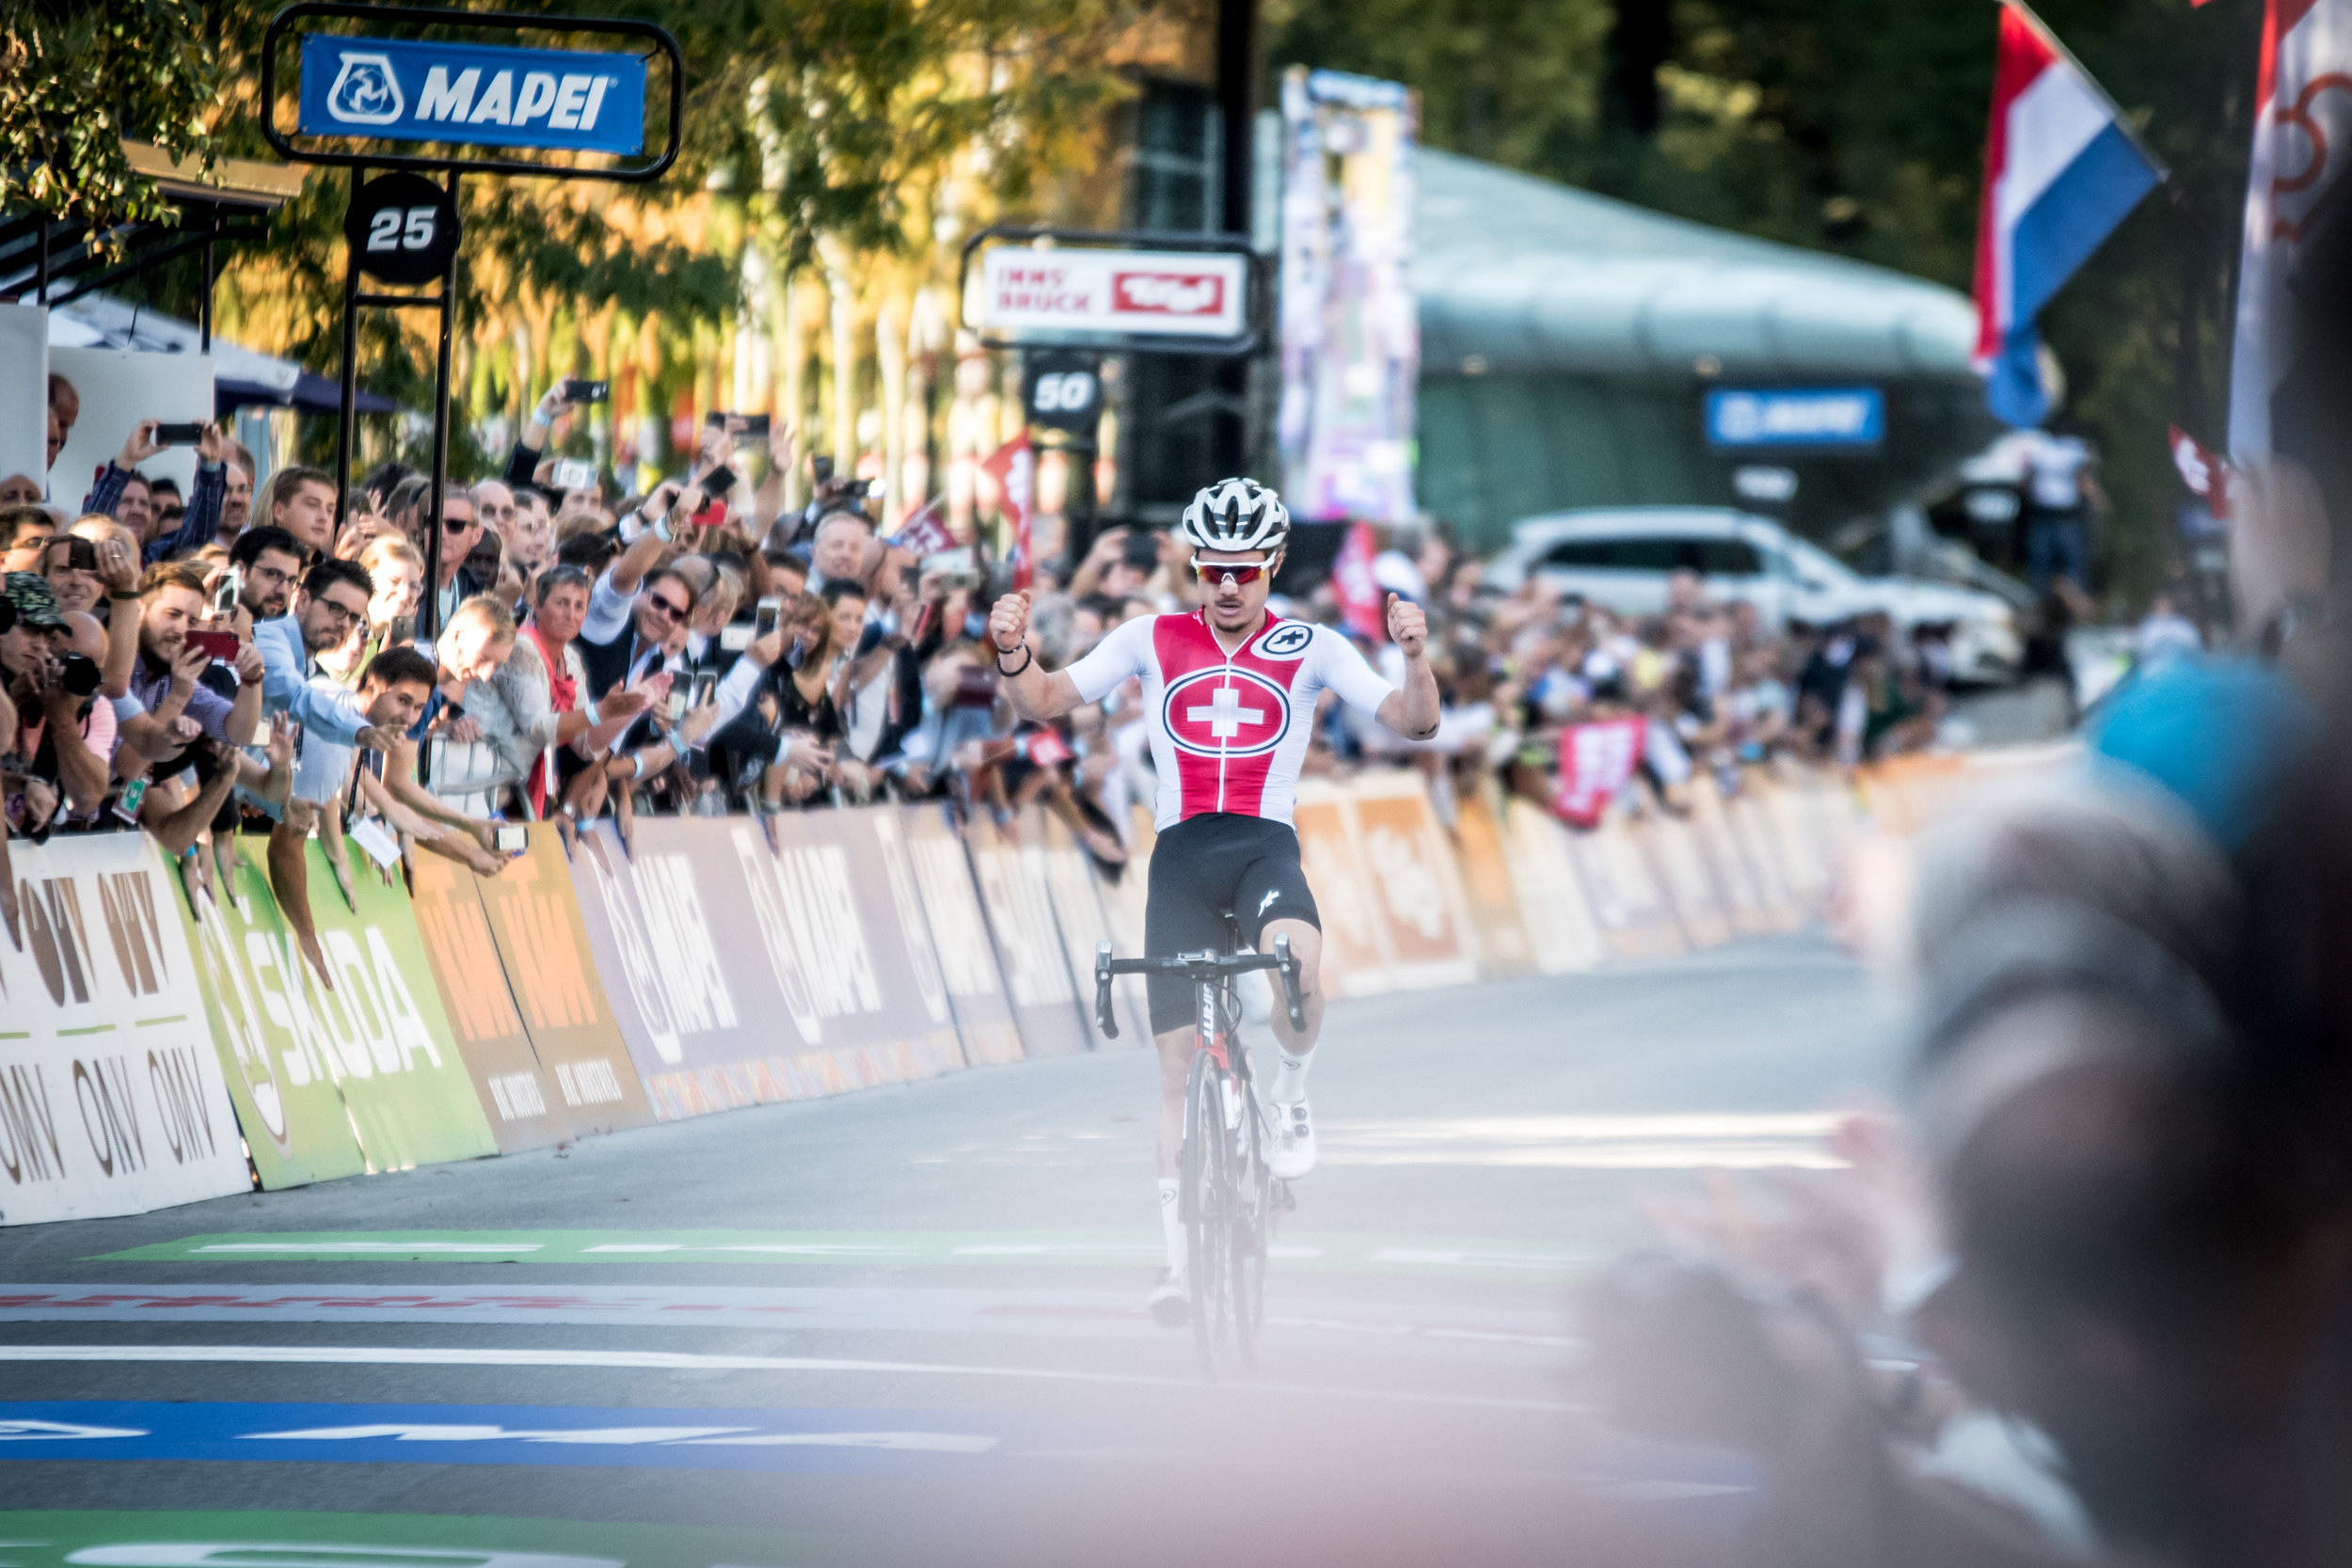 Swiss rider, Marc Hirschi taking out the under 23 men's road race in solo fashion.